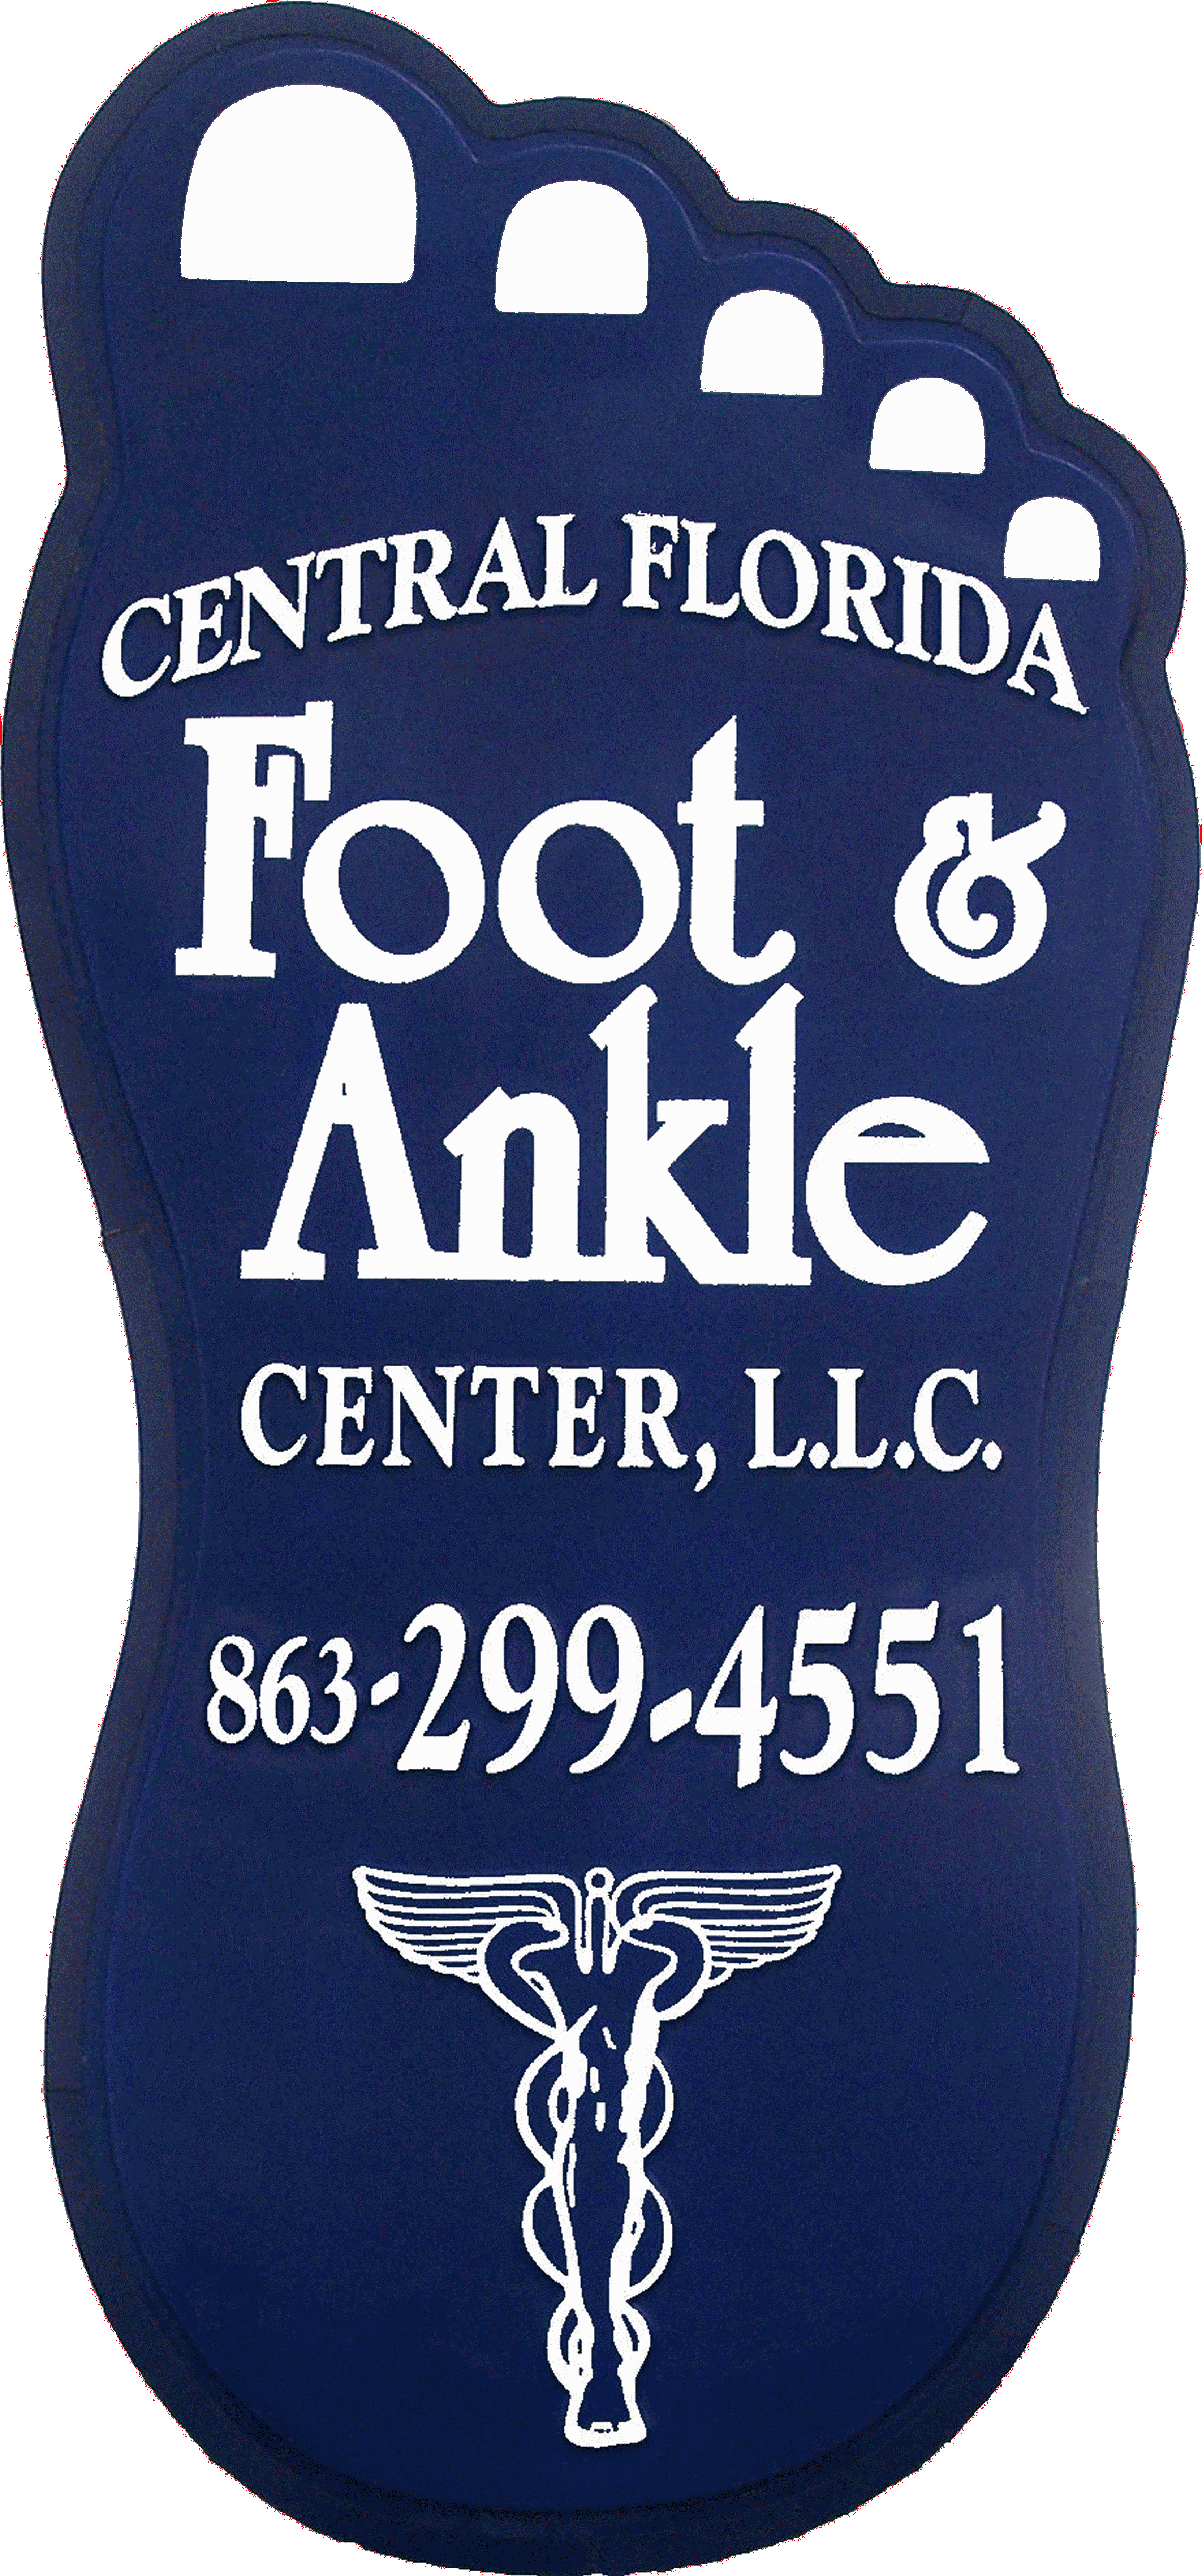 Central Florida Foot and Ankle Center, LLC image 3